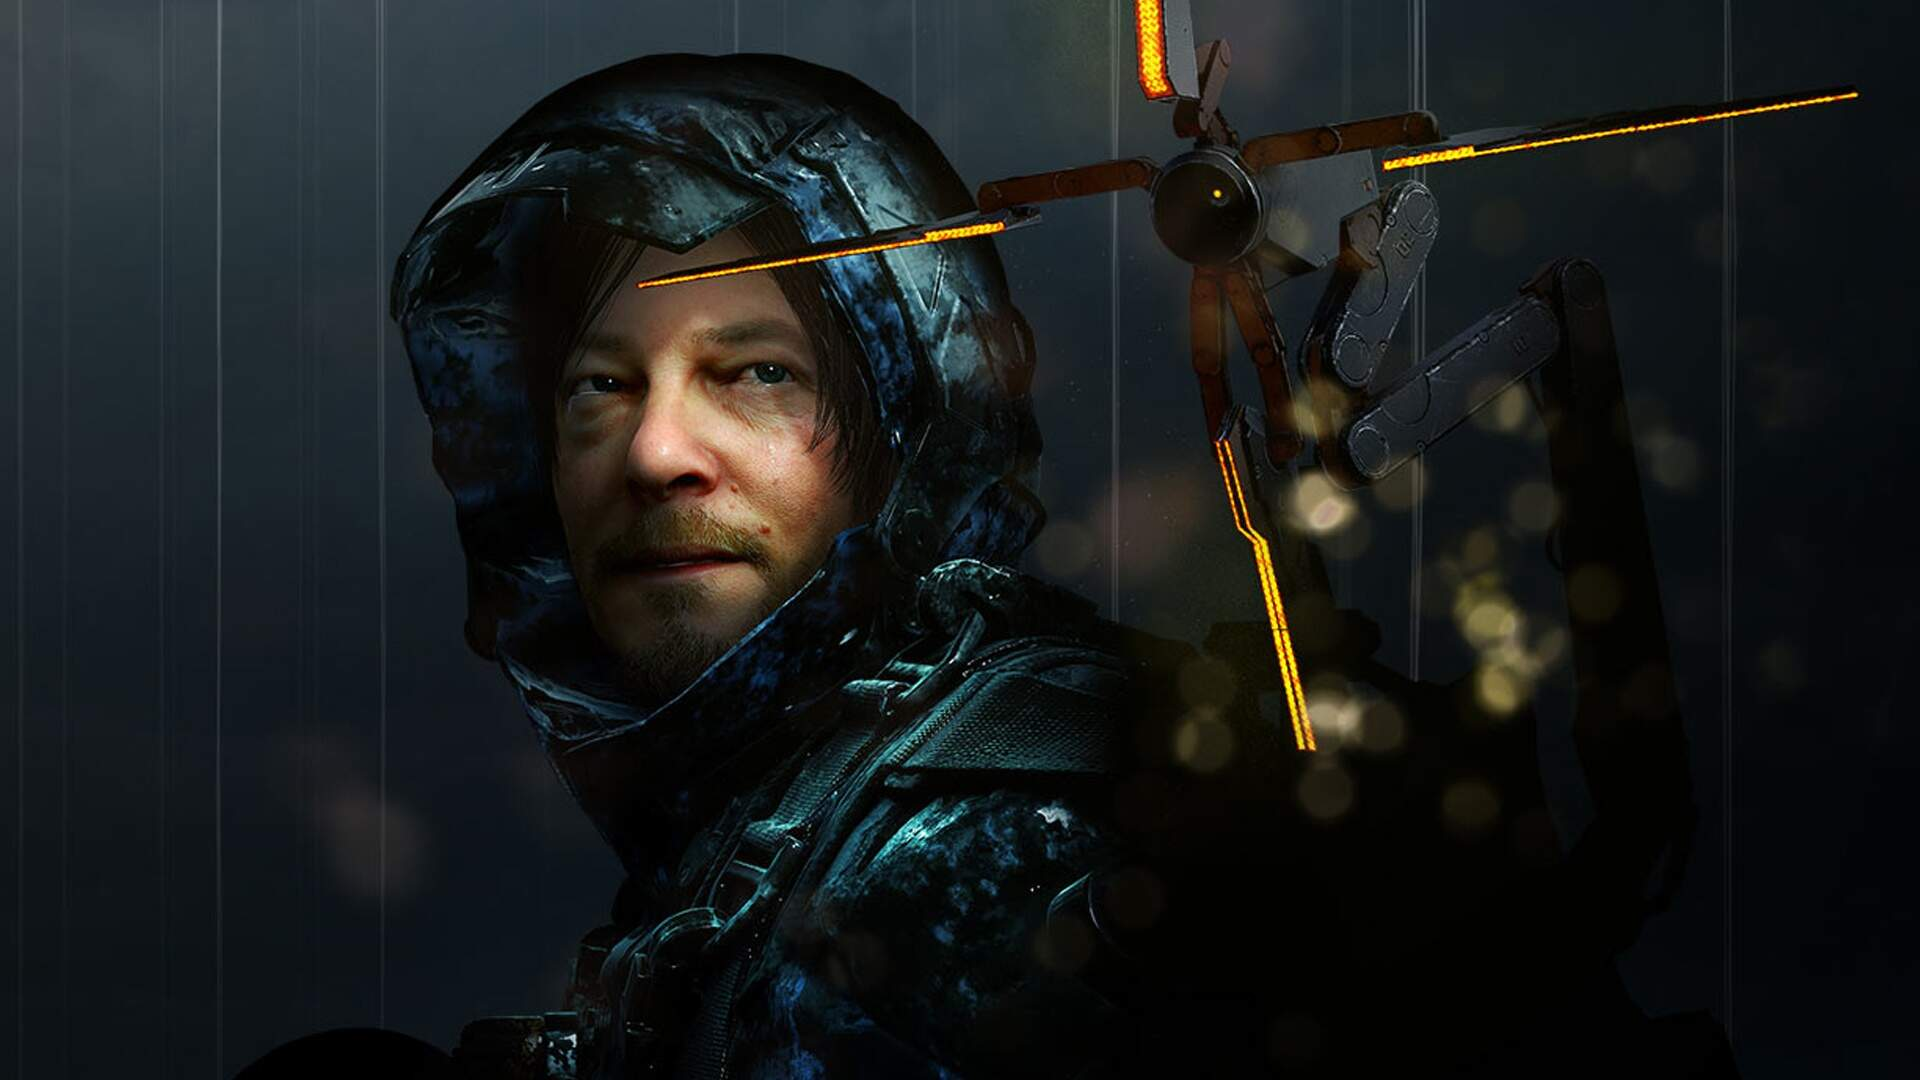 Watch the New Death Stranding Gameplay From TGS Here